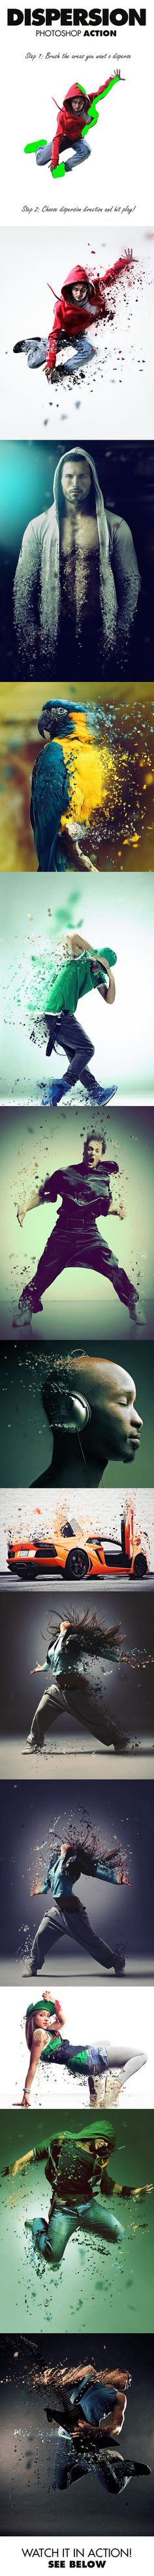 Dispersion Photoshop Action (Photo Effect)  Download **HERE**: https://graphicriver.net/item/dispersion-photoshop-action/7905698?ref=KlitVogli